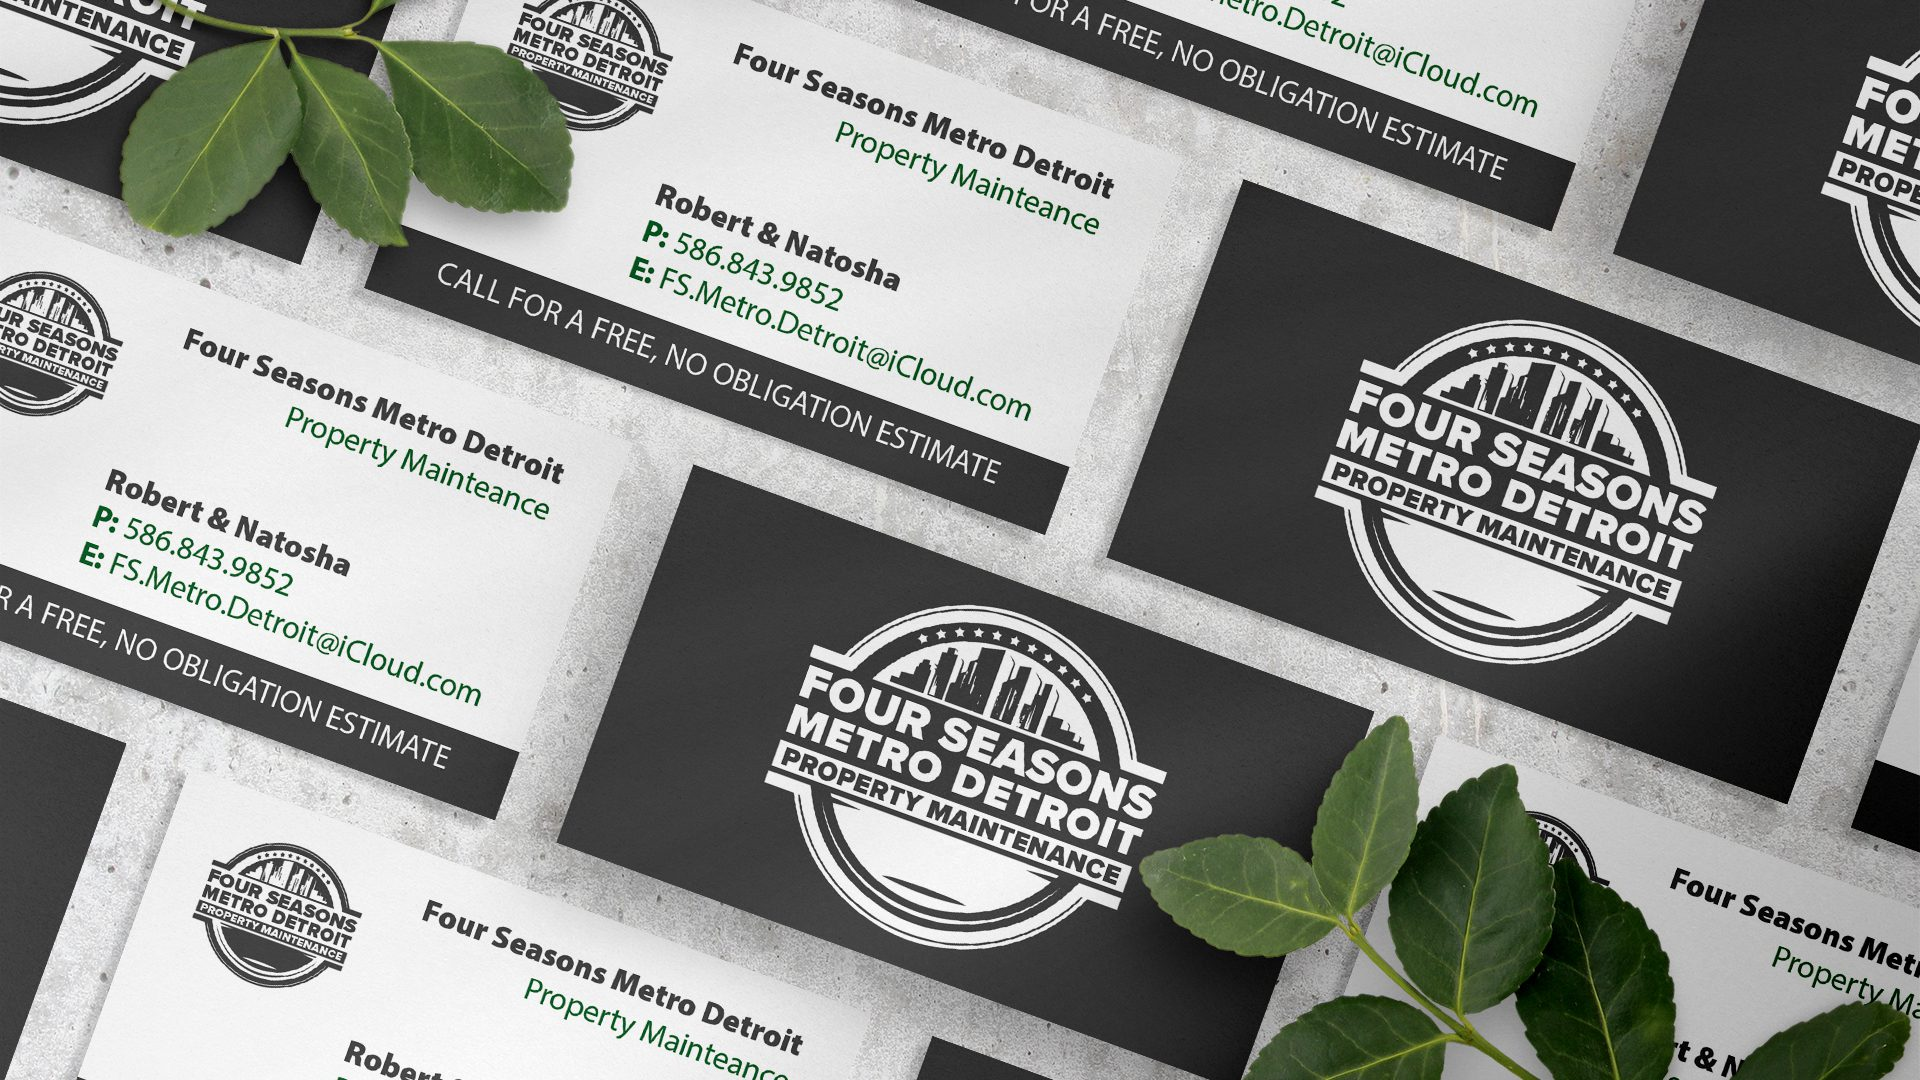 Four Seasons Metro Detroit - Robs Business Card Mockup (3)